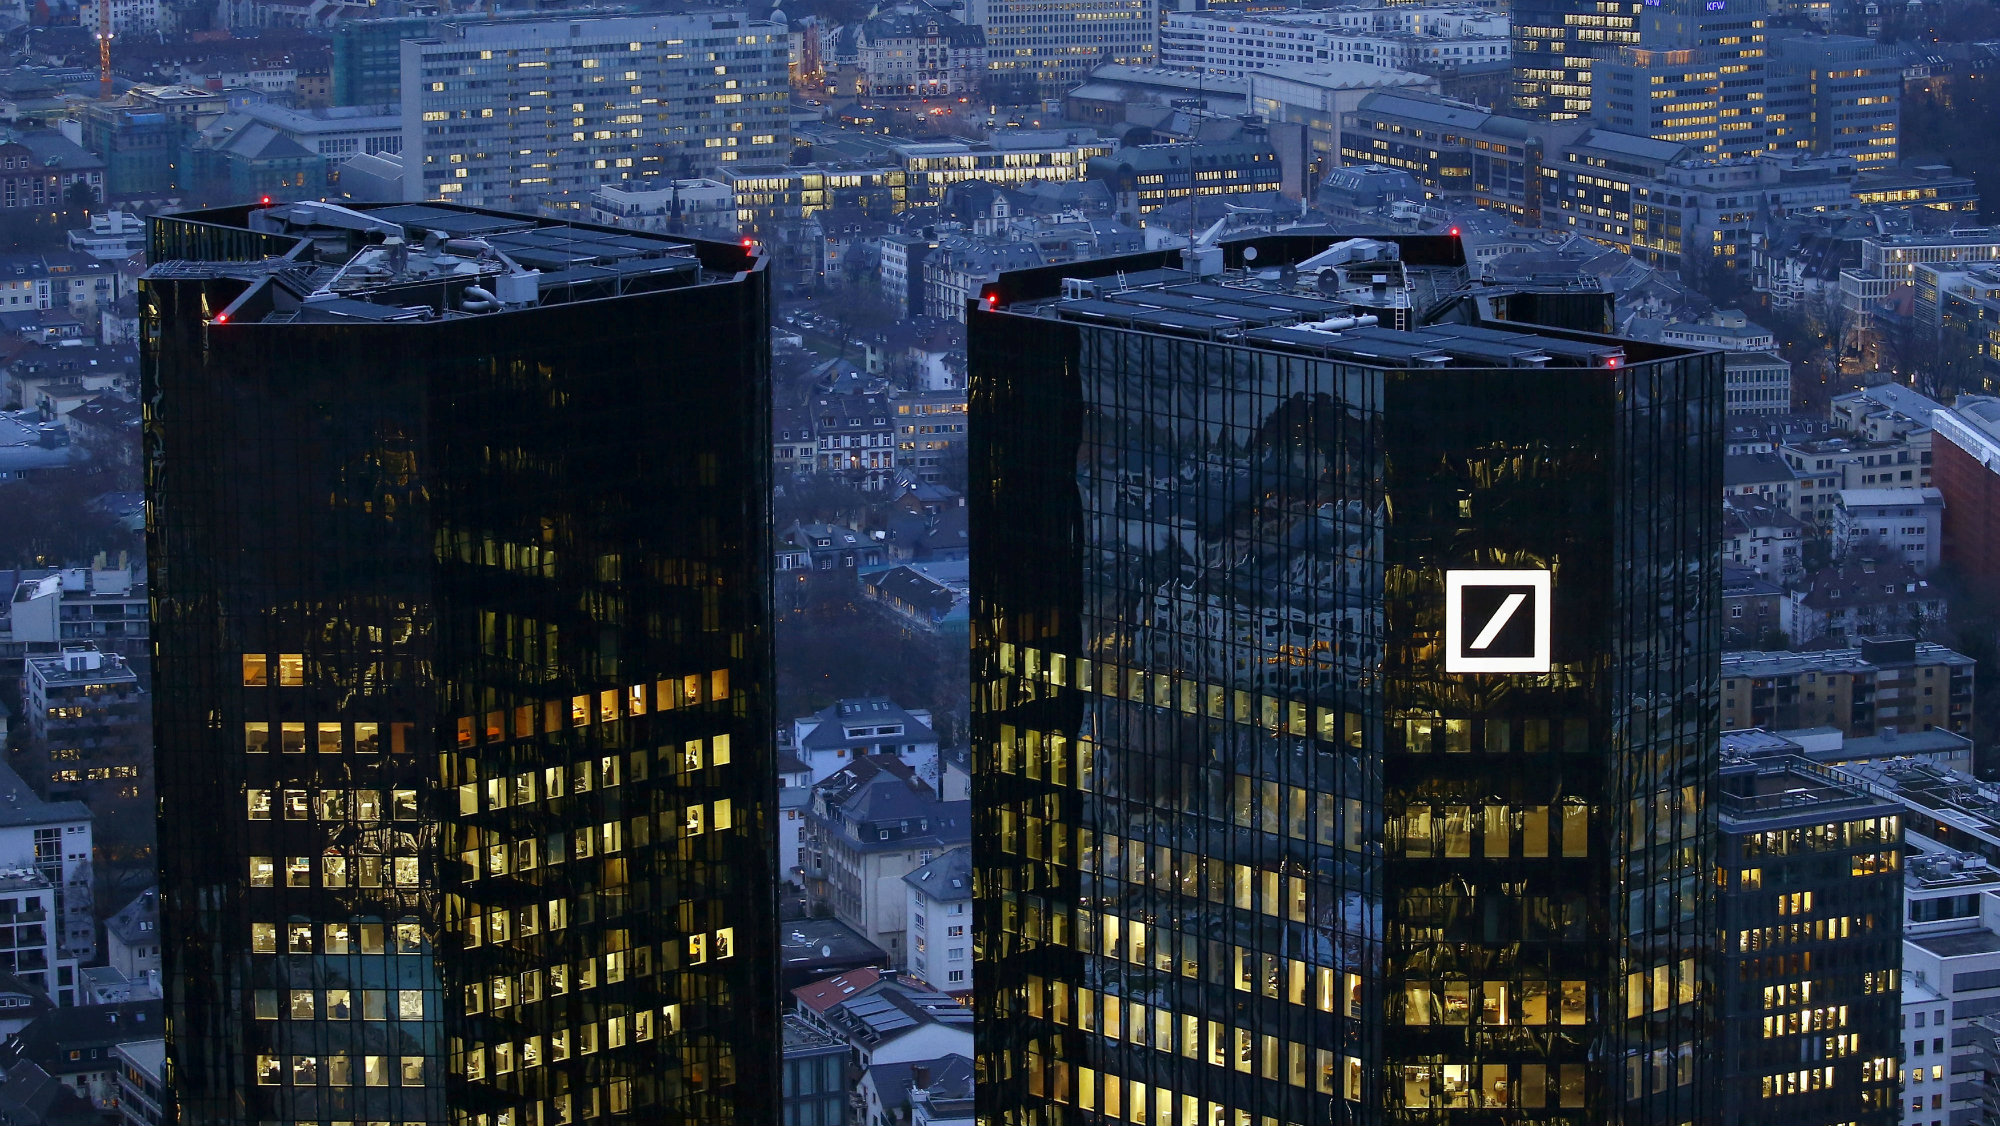 2016The headquarters of Germany's Deutsche Bank is photographed early evening in Frankfurt.